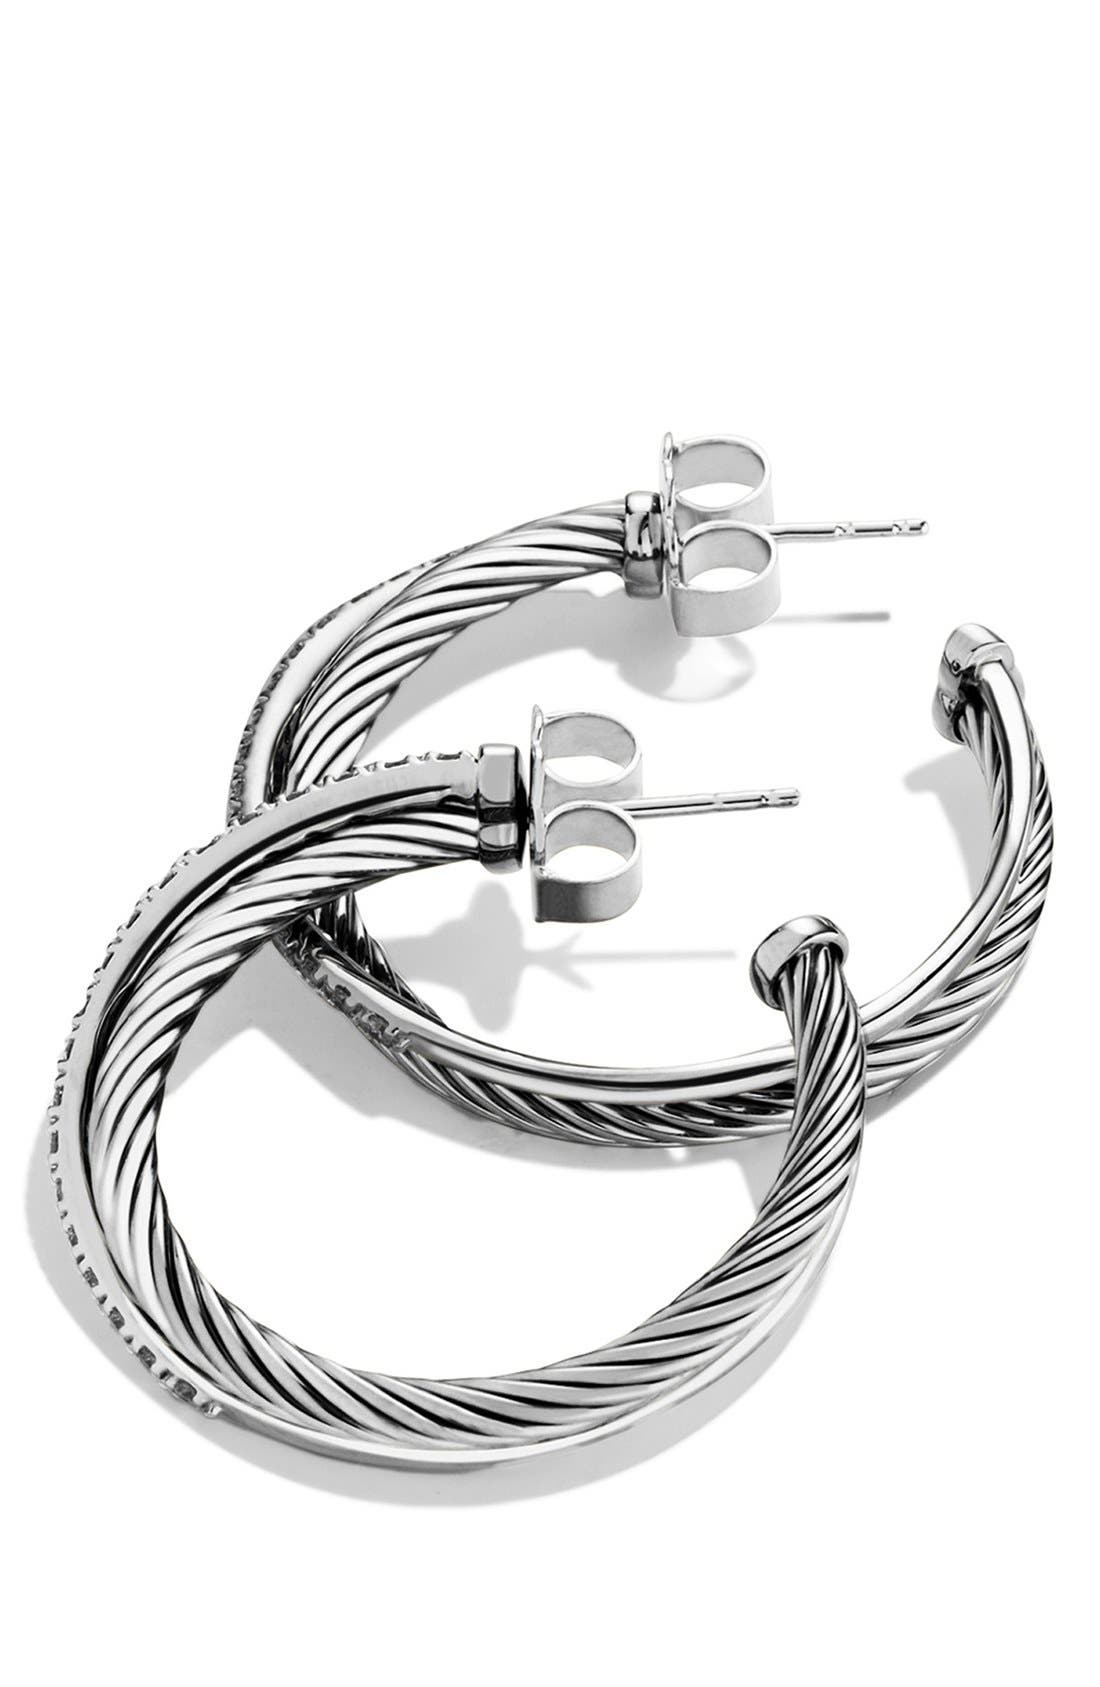 'Crossover' Hoop Earrings with Diamonds,                             Alternate thumbnail 2, color,                             040